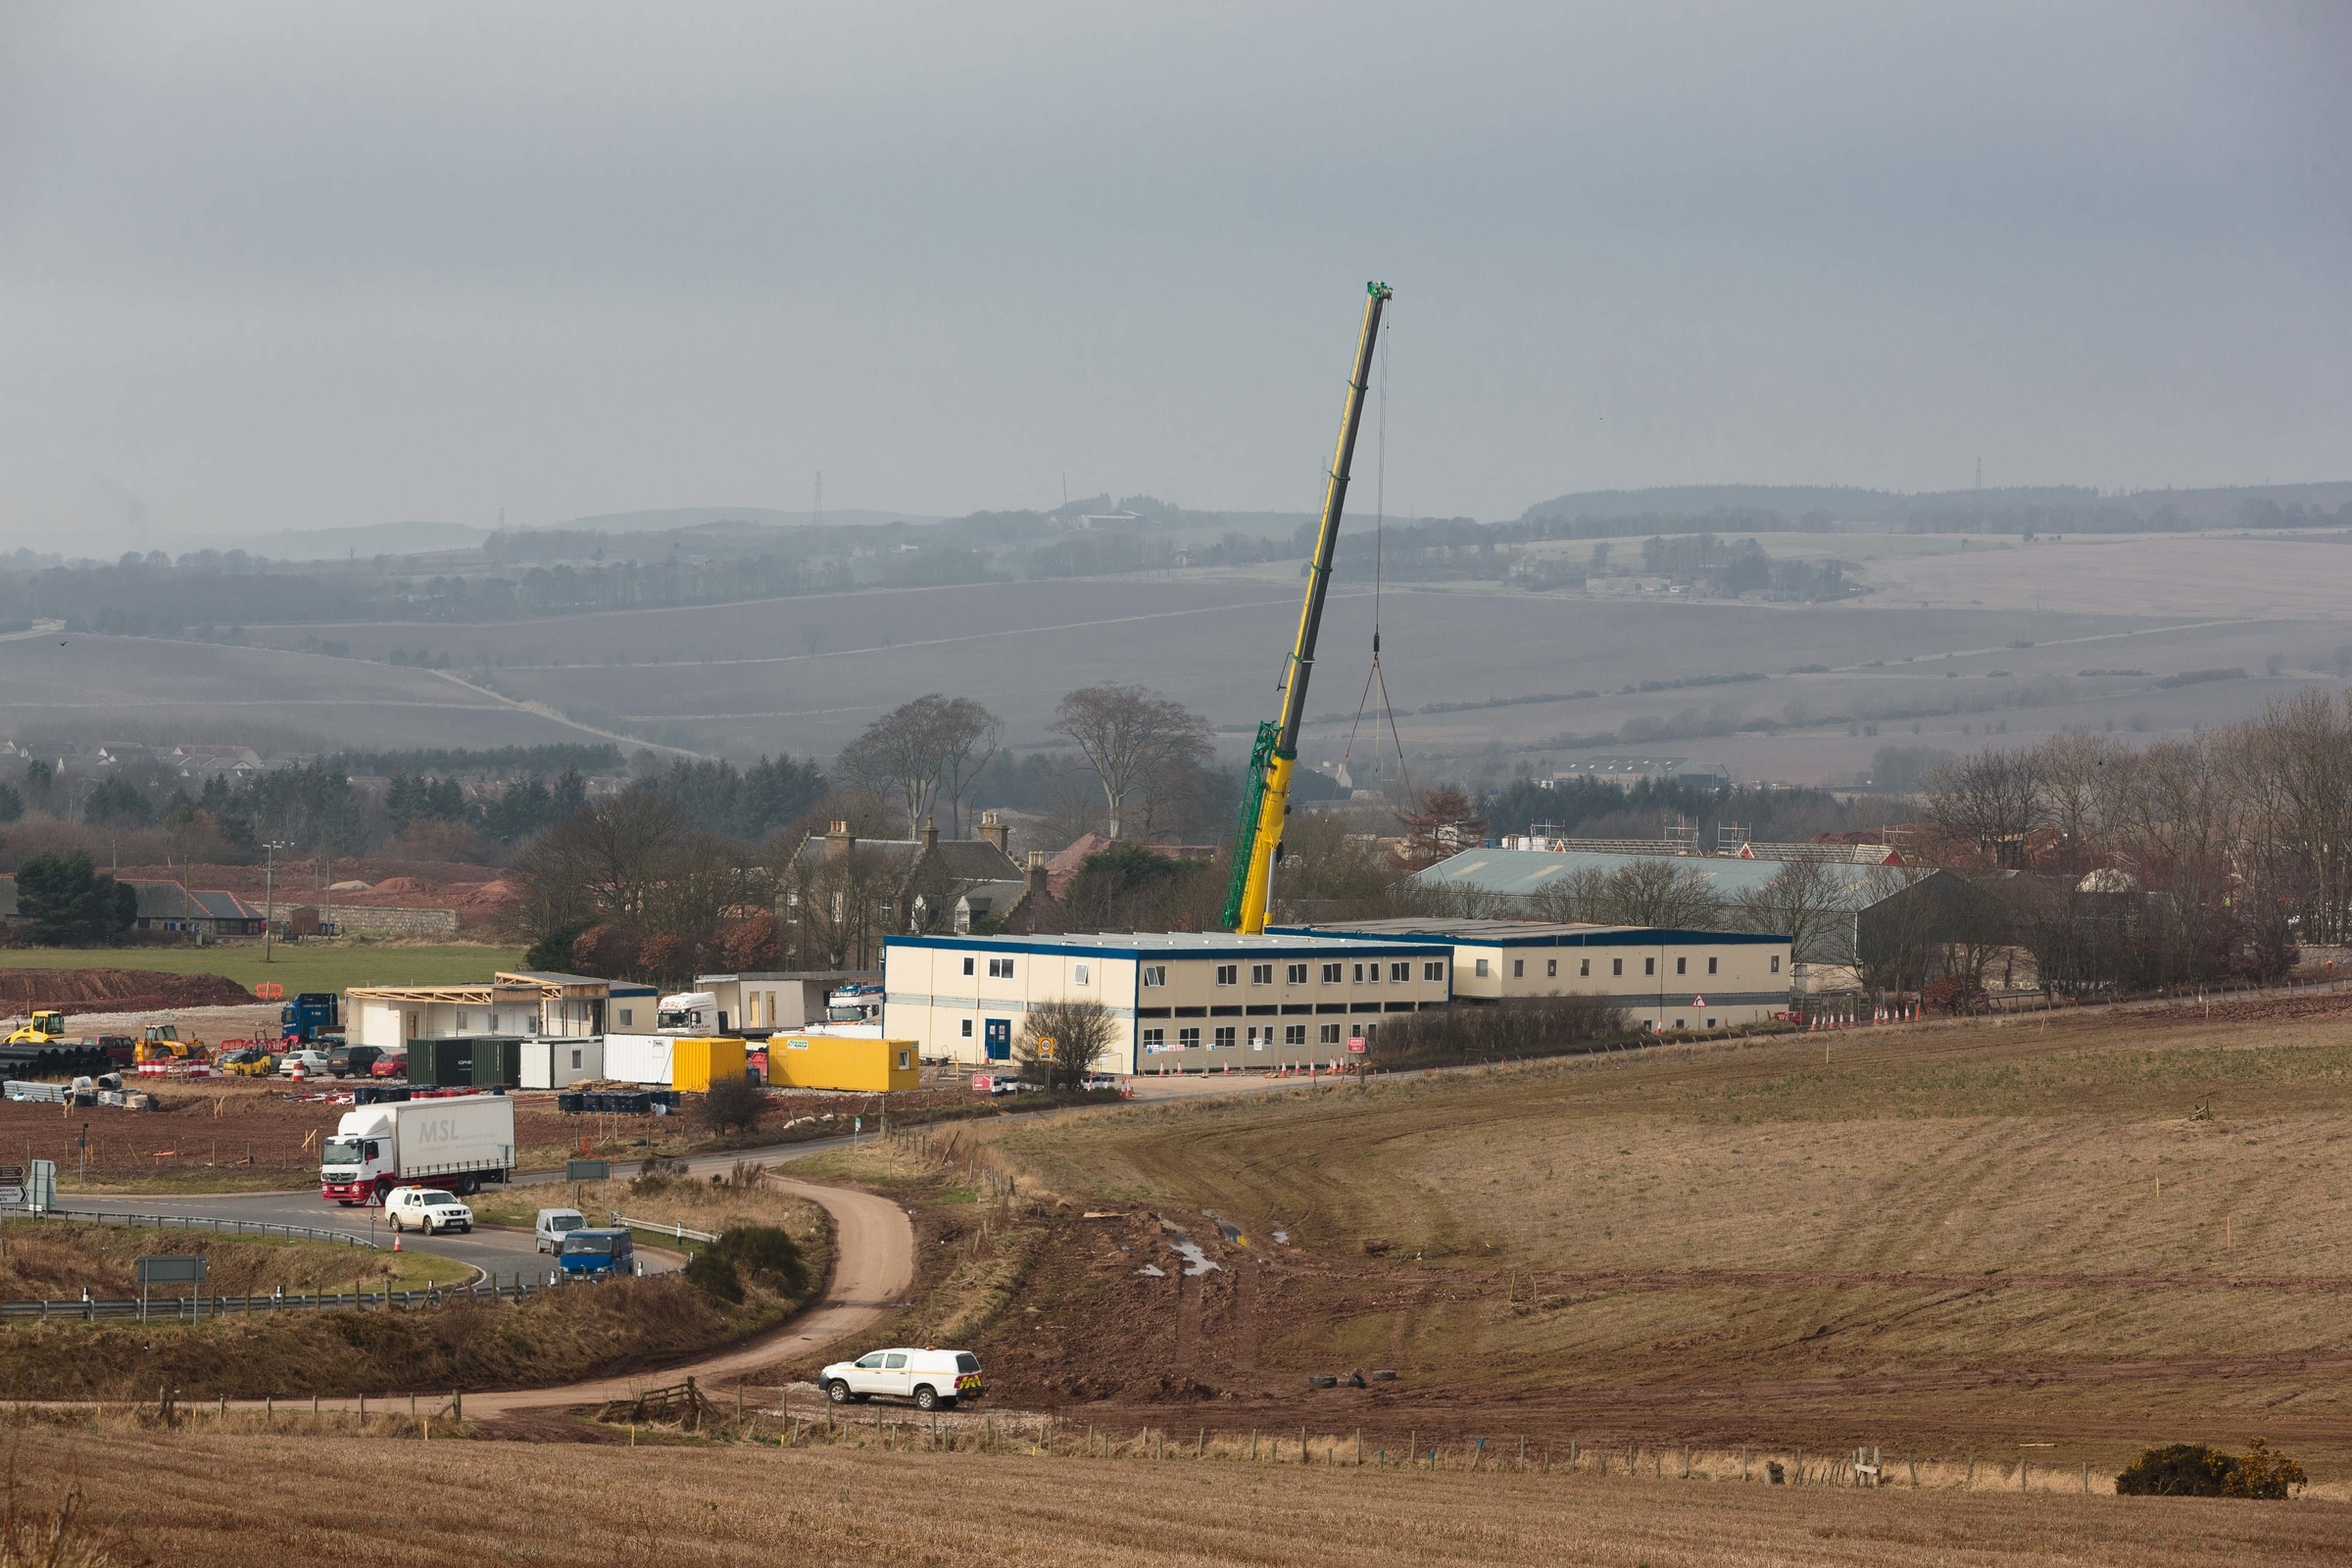 Greenwell Equipment have supplied the AWPR headquarters which is going up just north of Stonehaven